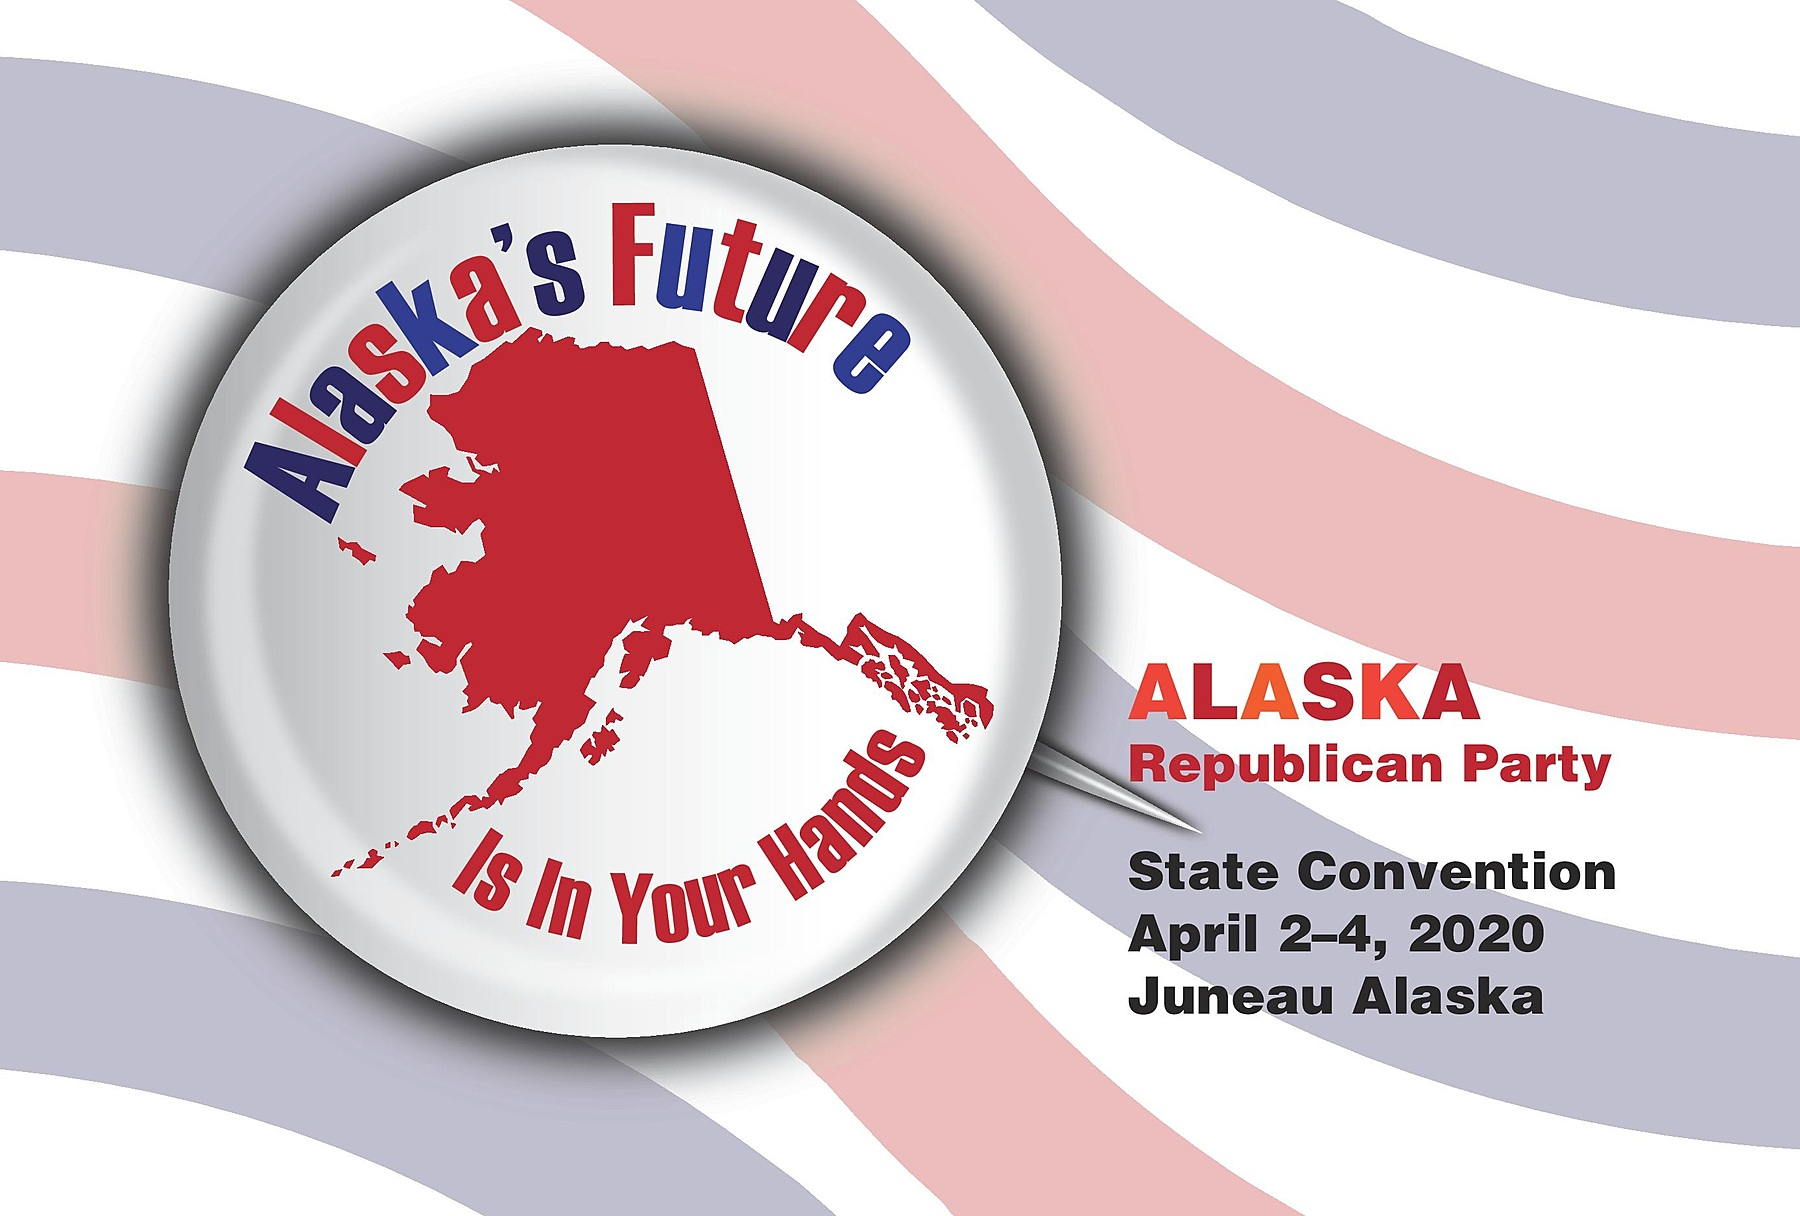 Alaska Republican Party: 2020 Republican State Convention